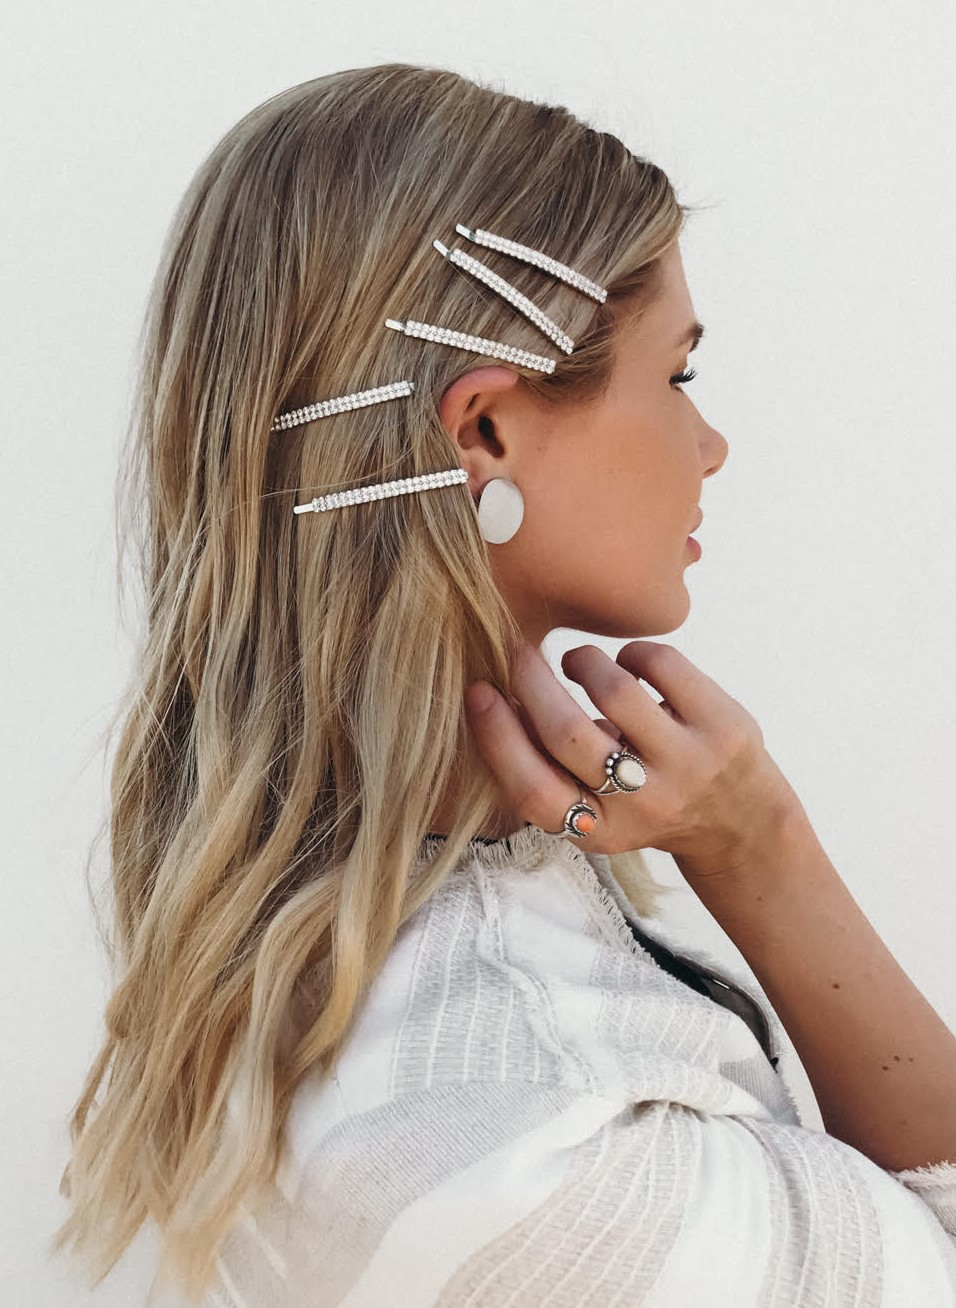 one-side-how-to-style-hair-accessories-clip-barrettes-sidepart-white-multiple.jpg